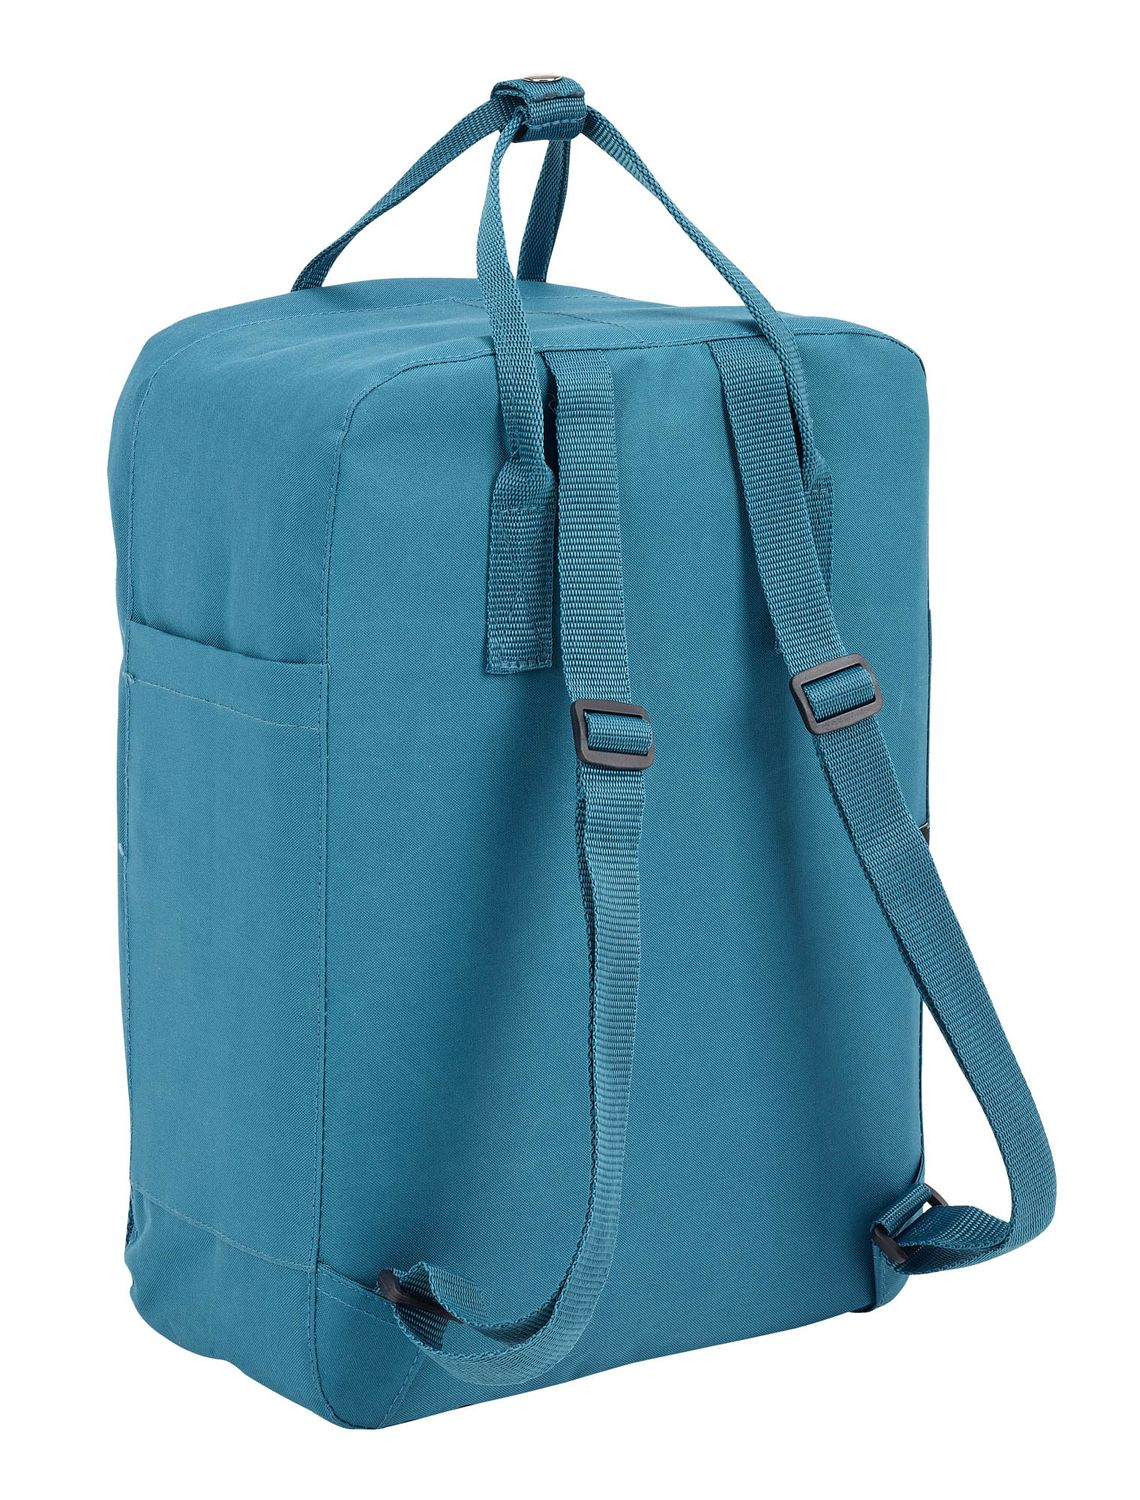 Glowlab Backpack with Handles Blue – image 2